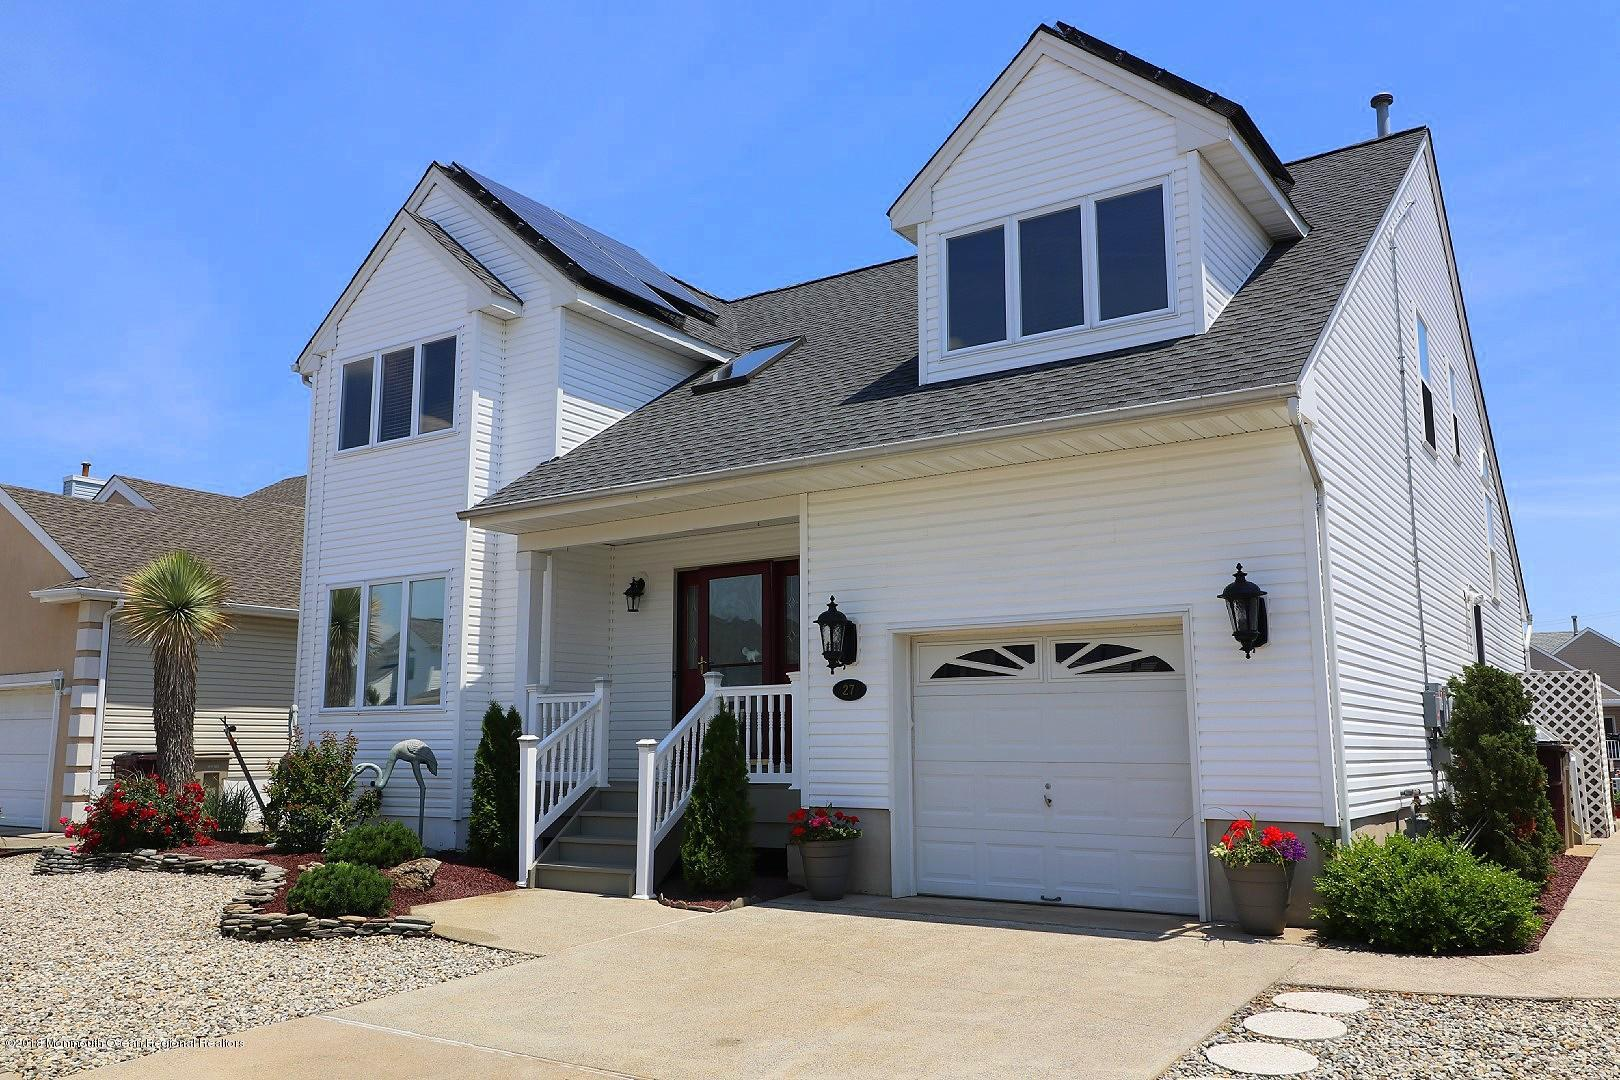 27  Toppinglift Drive,  Bayville, NJ